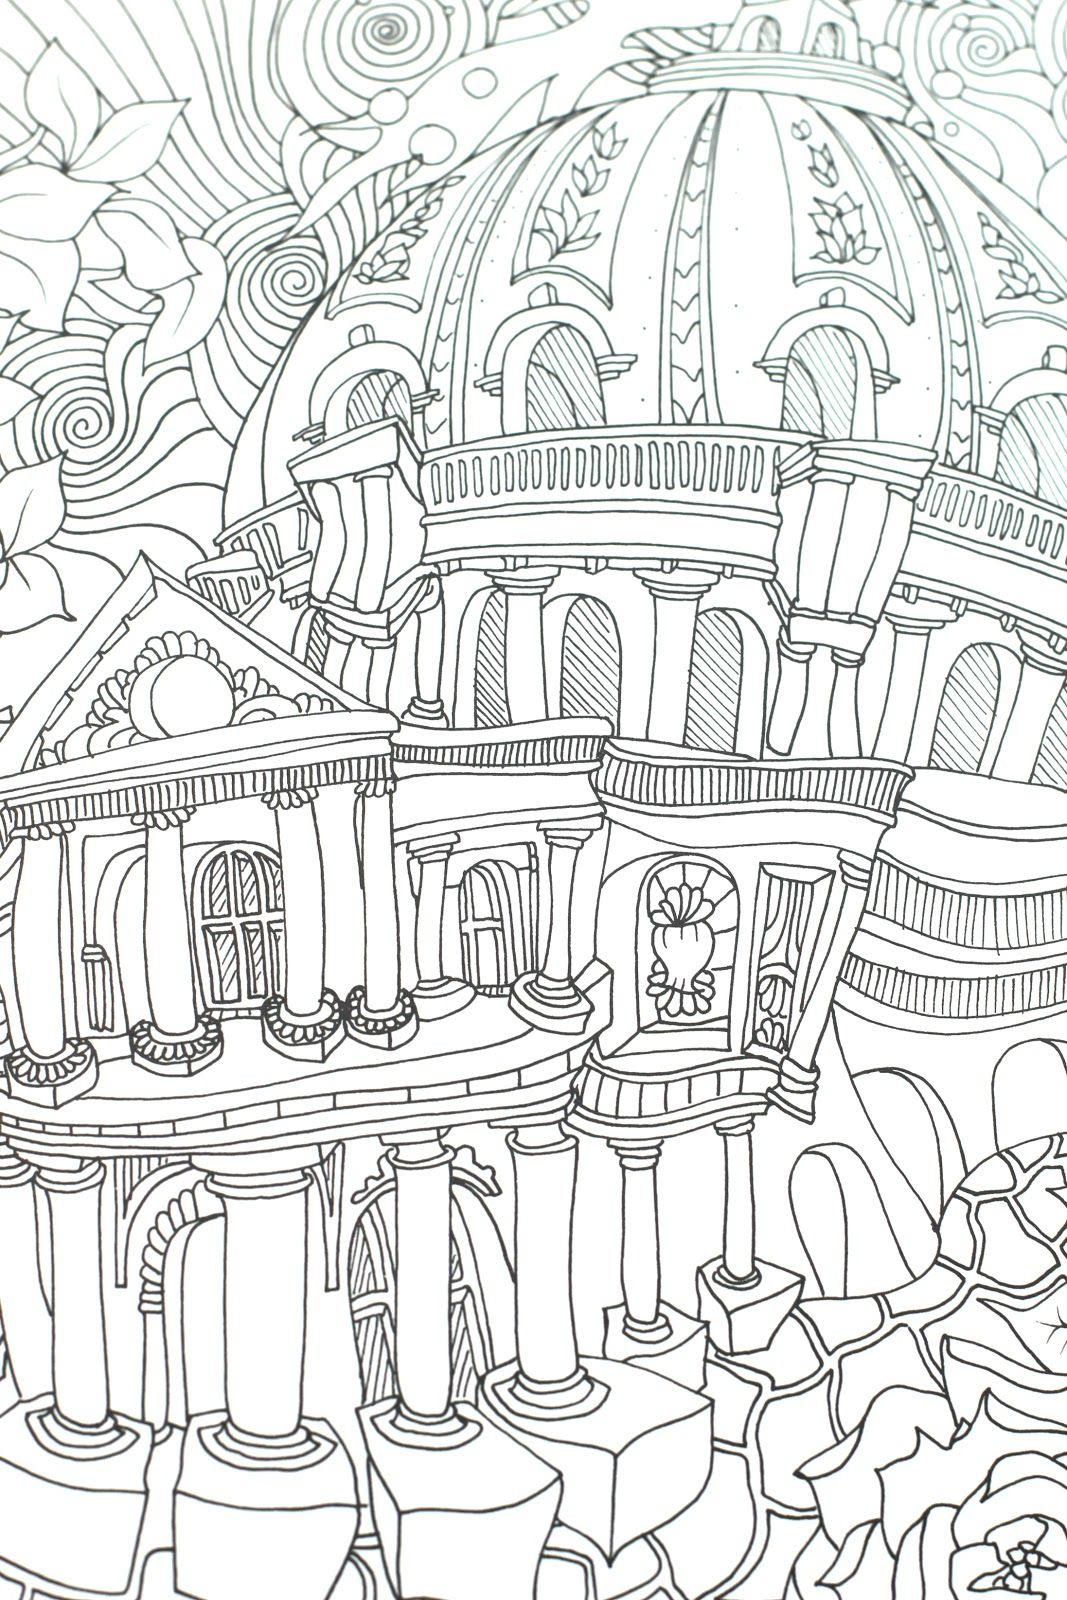 The Magical City Coloring Book Colouring Pages Coloring Pages Coloring Books